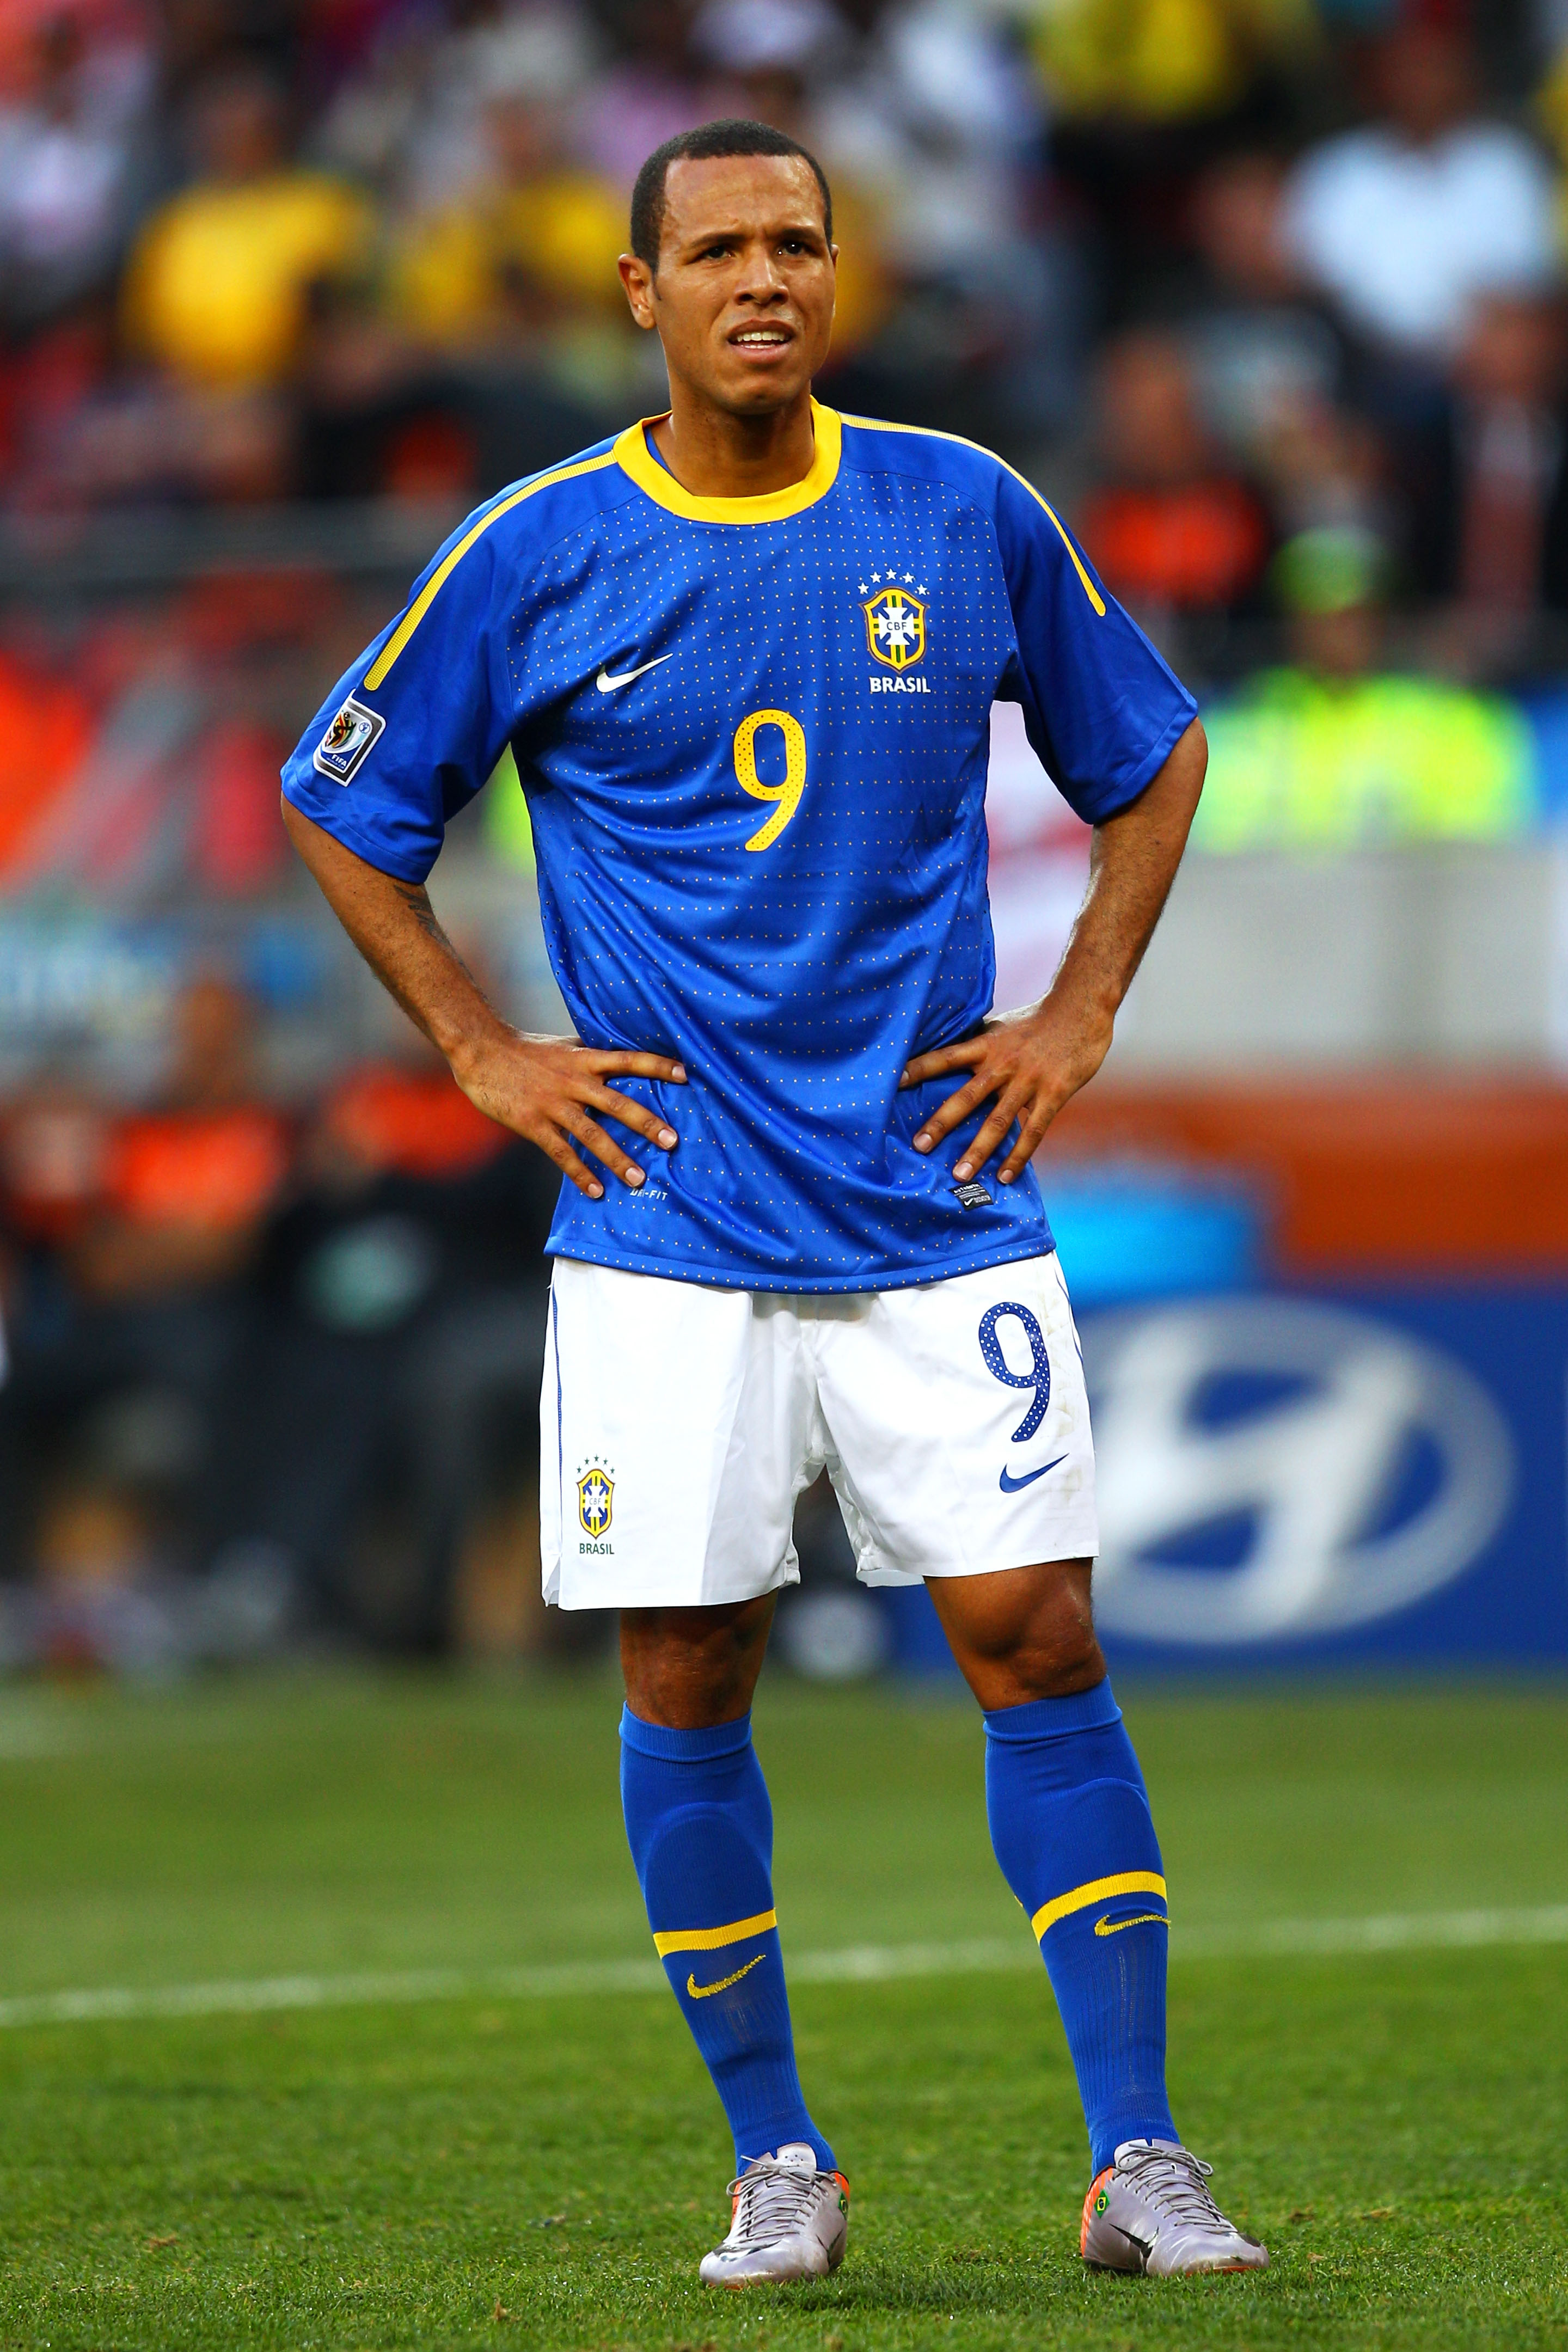 PORT ELIZABETH, SOUTH AFRICA - JULY 02:  Luis Fabiano of Brazil looks on during the 2010 FIFA World Cup South Africa Quarter Final match between Netherlands and Brazil at Nelson Mandela Bay Stadium on July 2, 2010 in Nelson Mandela Bay/Port Elizabeth, Sou